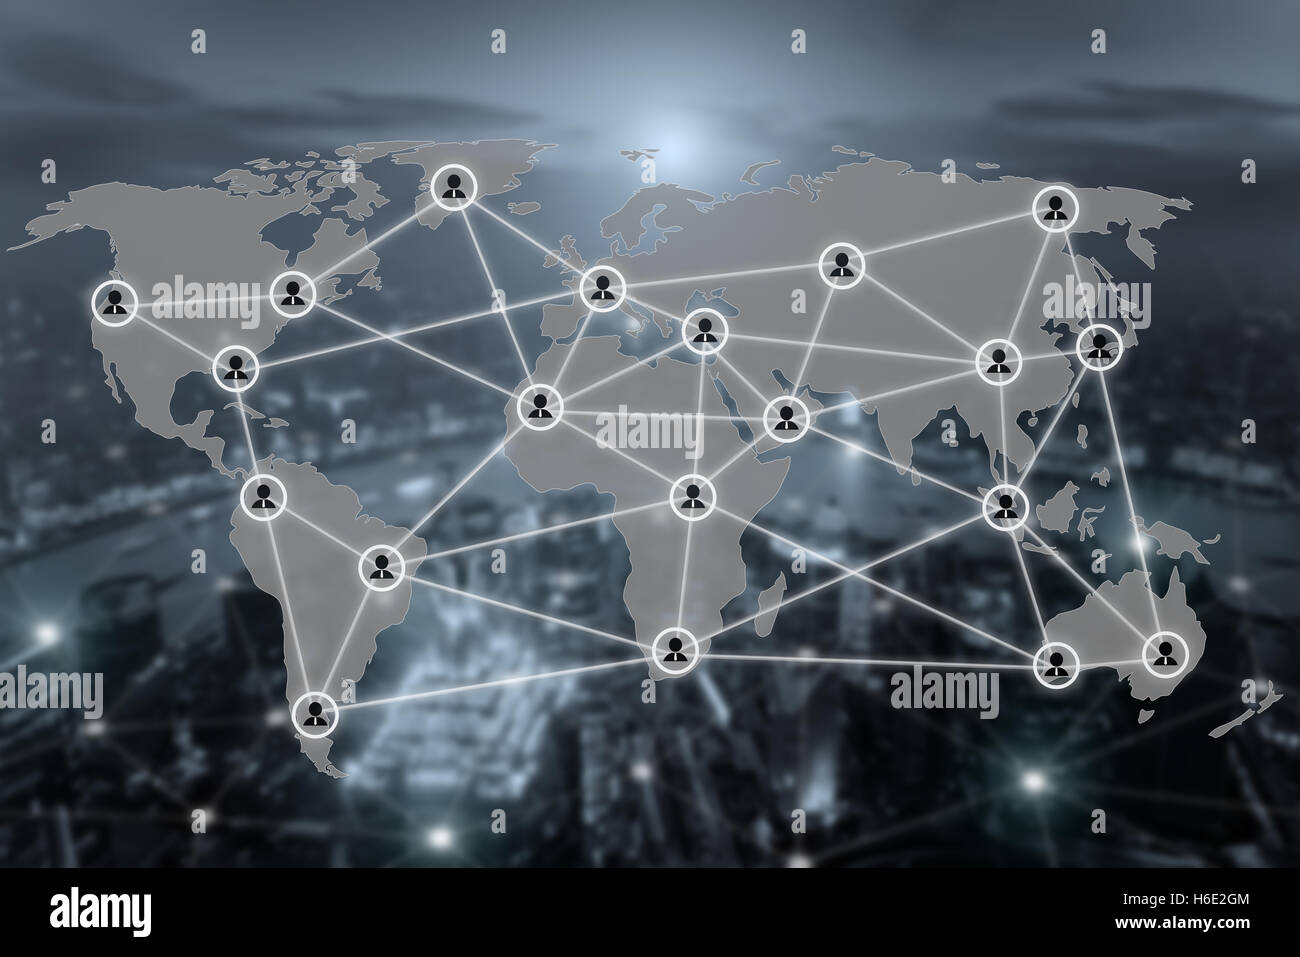 World map and connection social network communication icon with blurr city in background. Social network concept. - Stock Image